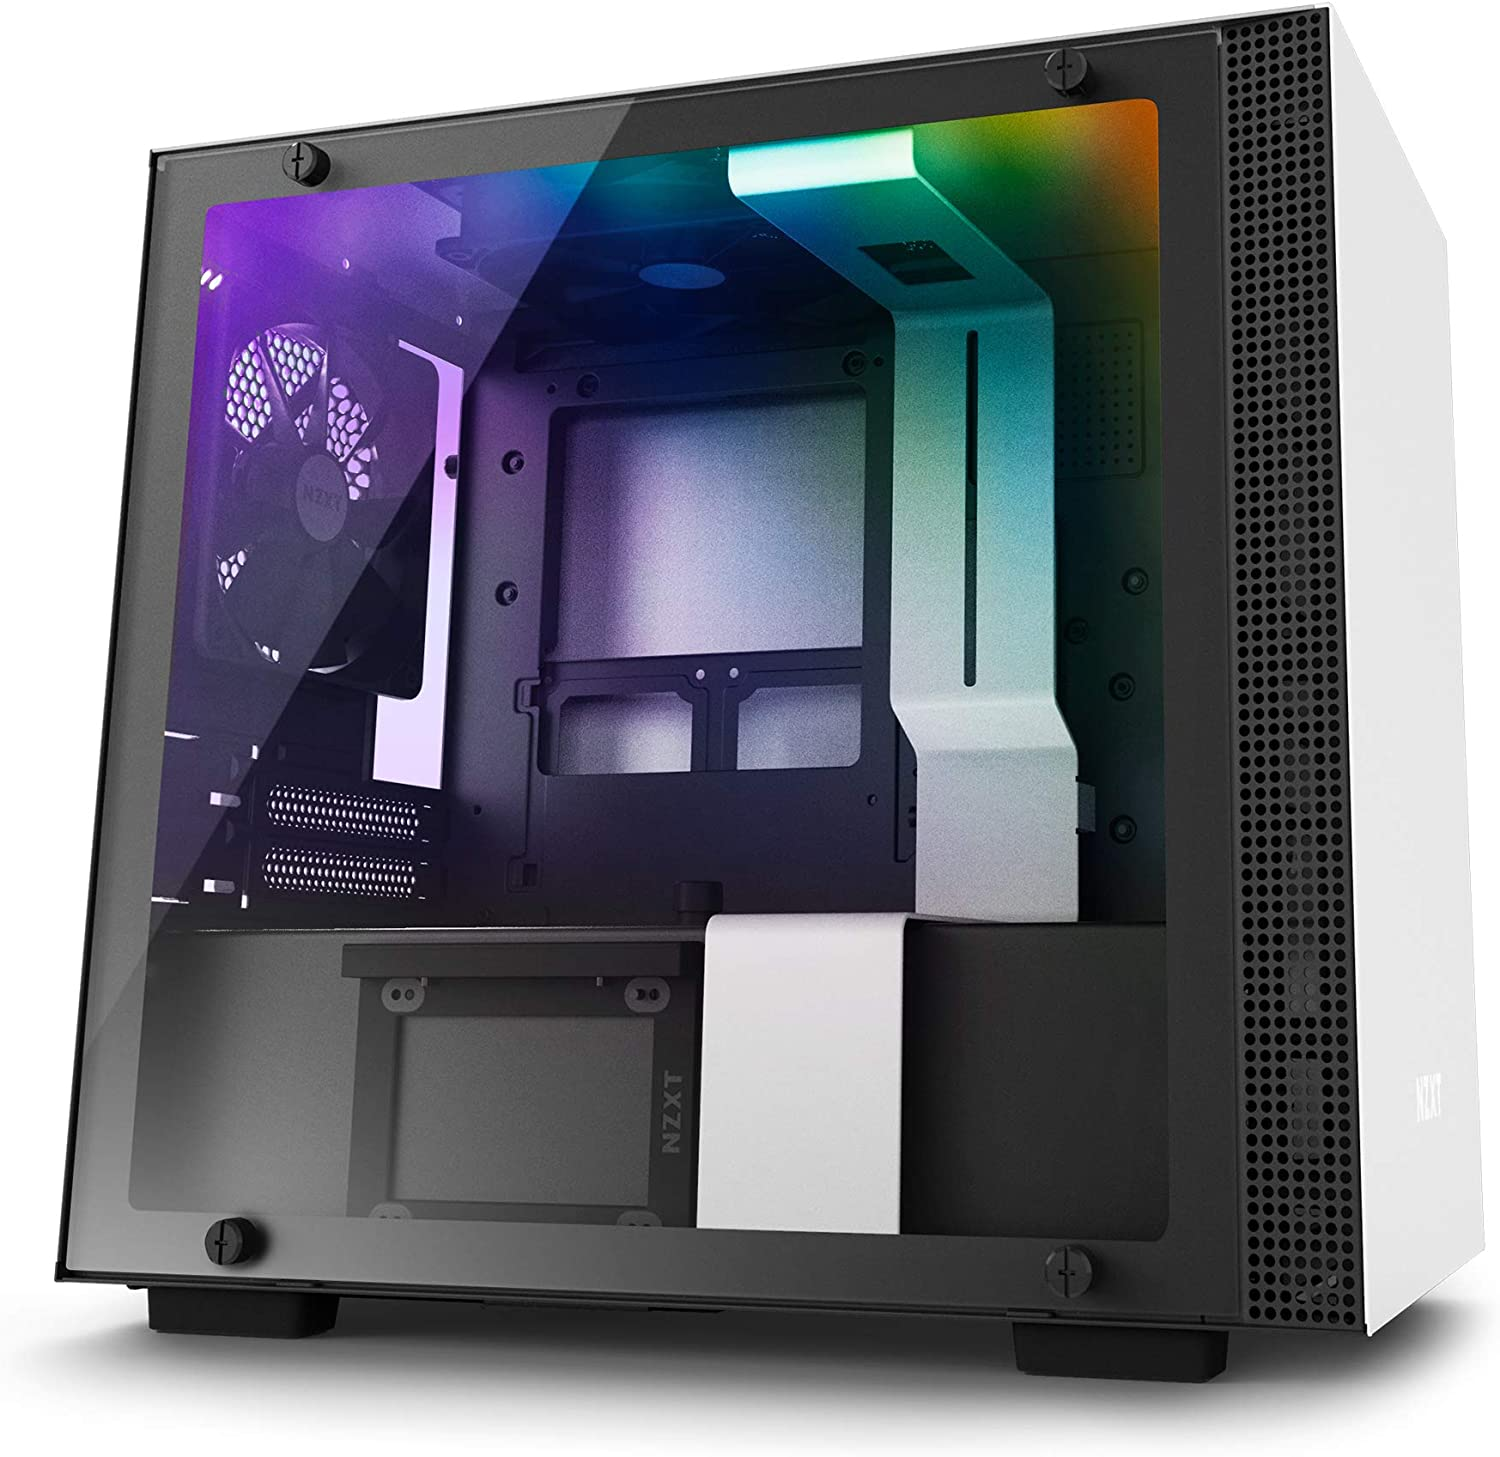 NZXT H200i - Mini-ITX PC Gaming Case - RGB Lighting and Fan Control - CAM-Powered Smart Device - Tempered Glass Panel - Enhanced Cable Management System – Water-Cooling Ready - White/Black